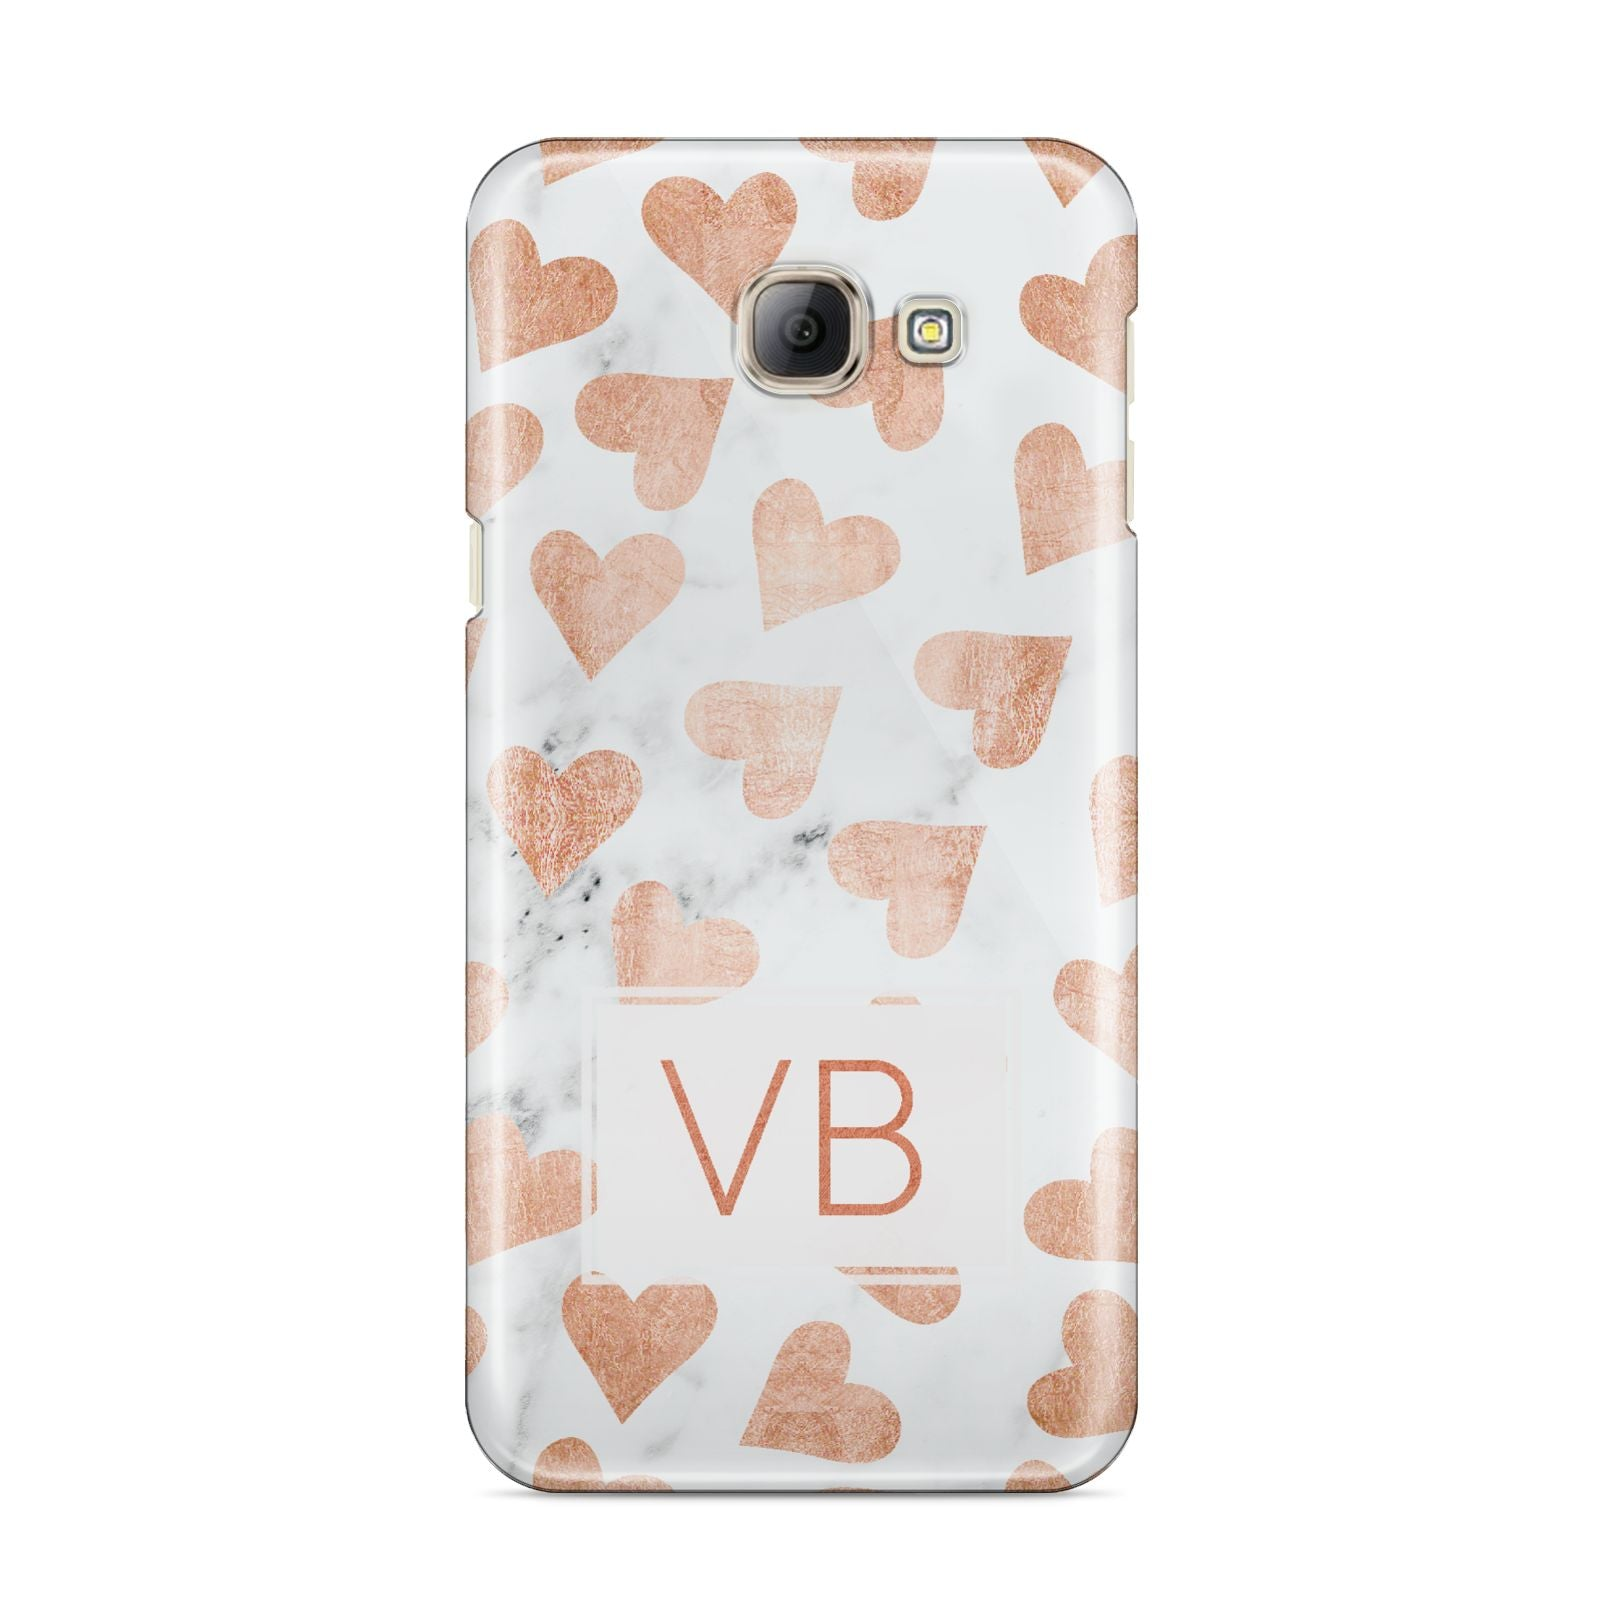 Personalised Heart Initialled Marble Samsung Galaxy A8 2016 Case